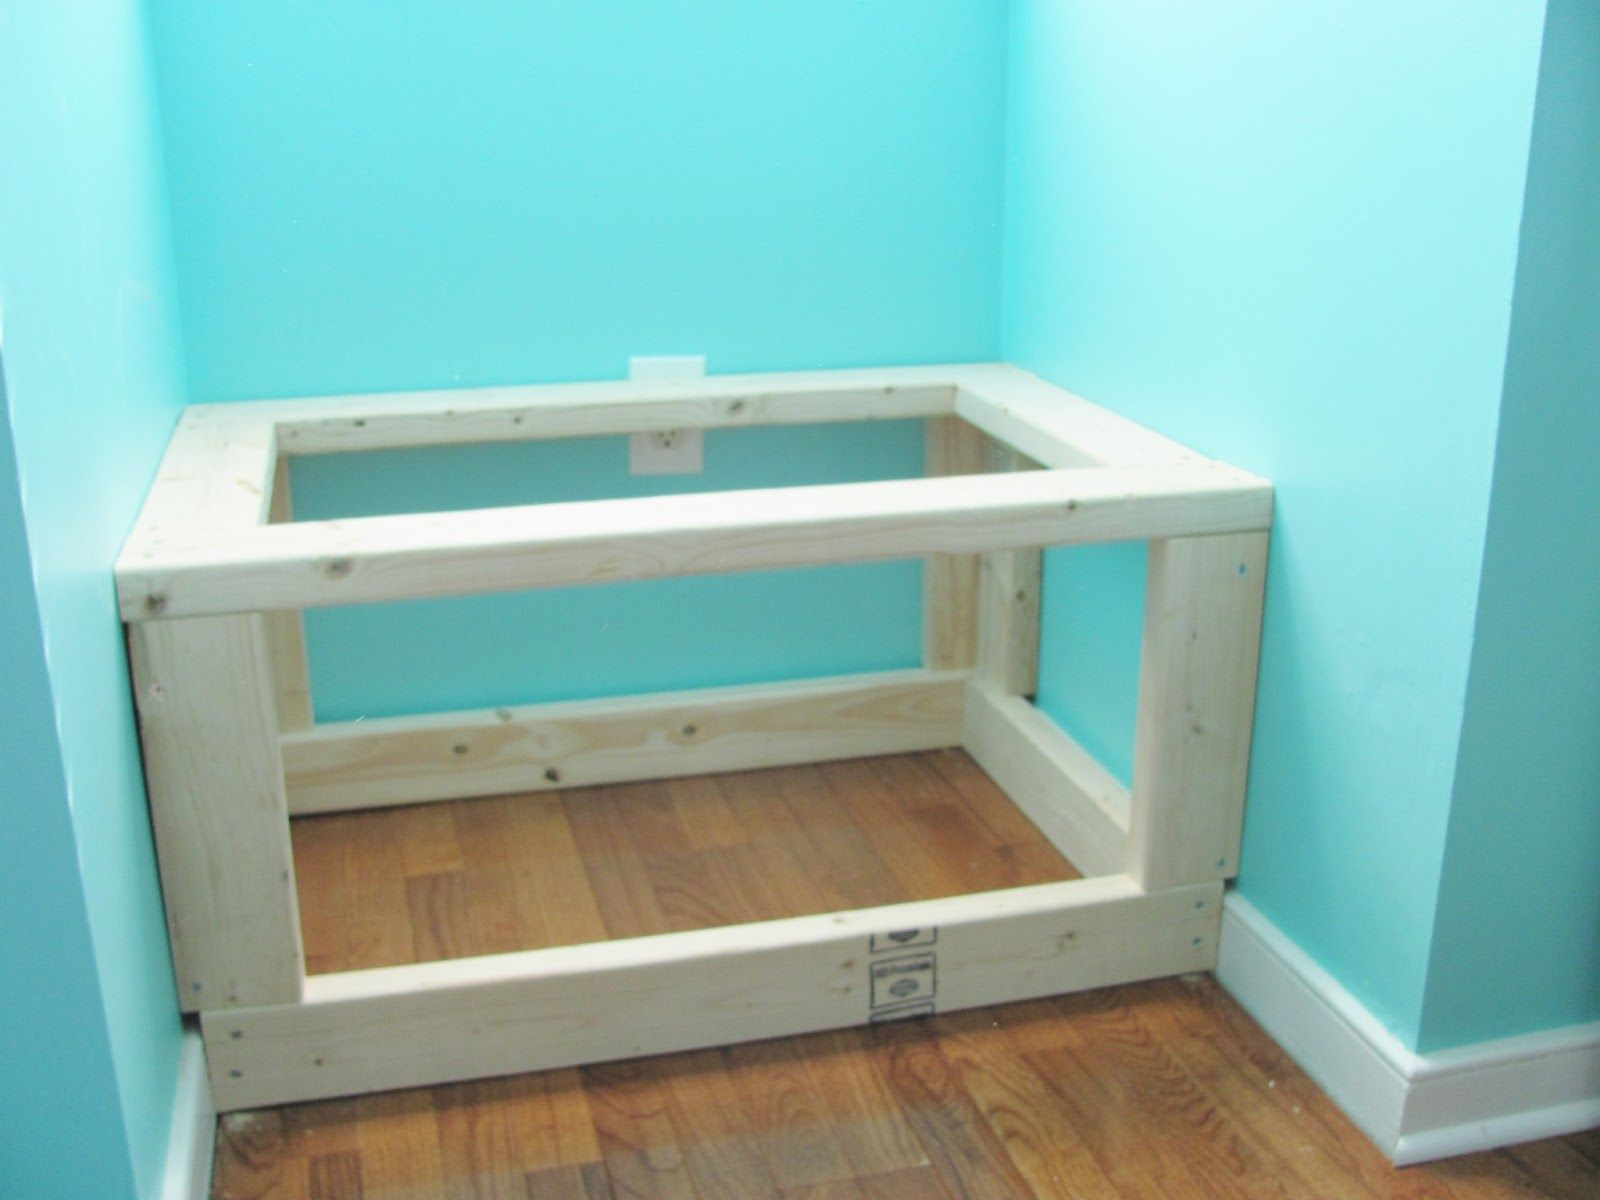 Silver Lining Decor: DIY Built In Window Seat and Storage ...